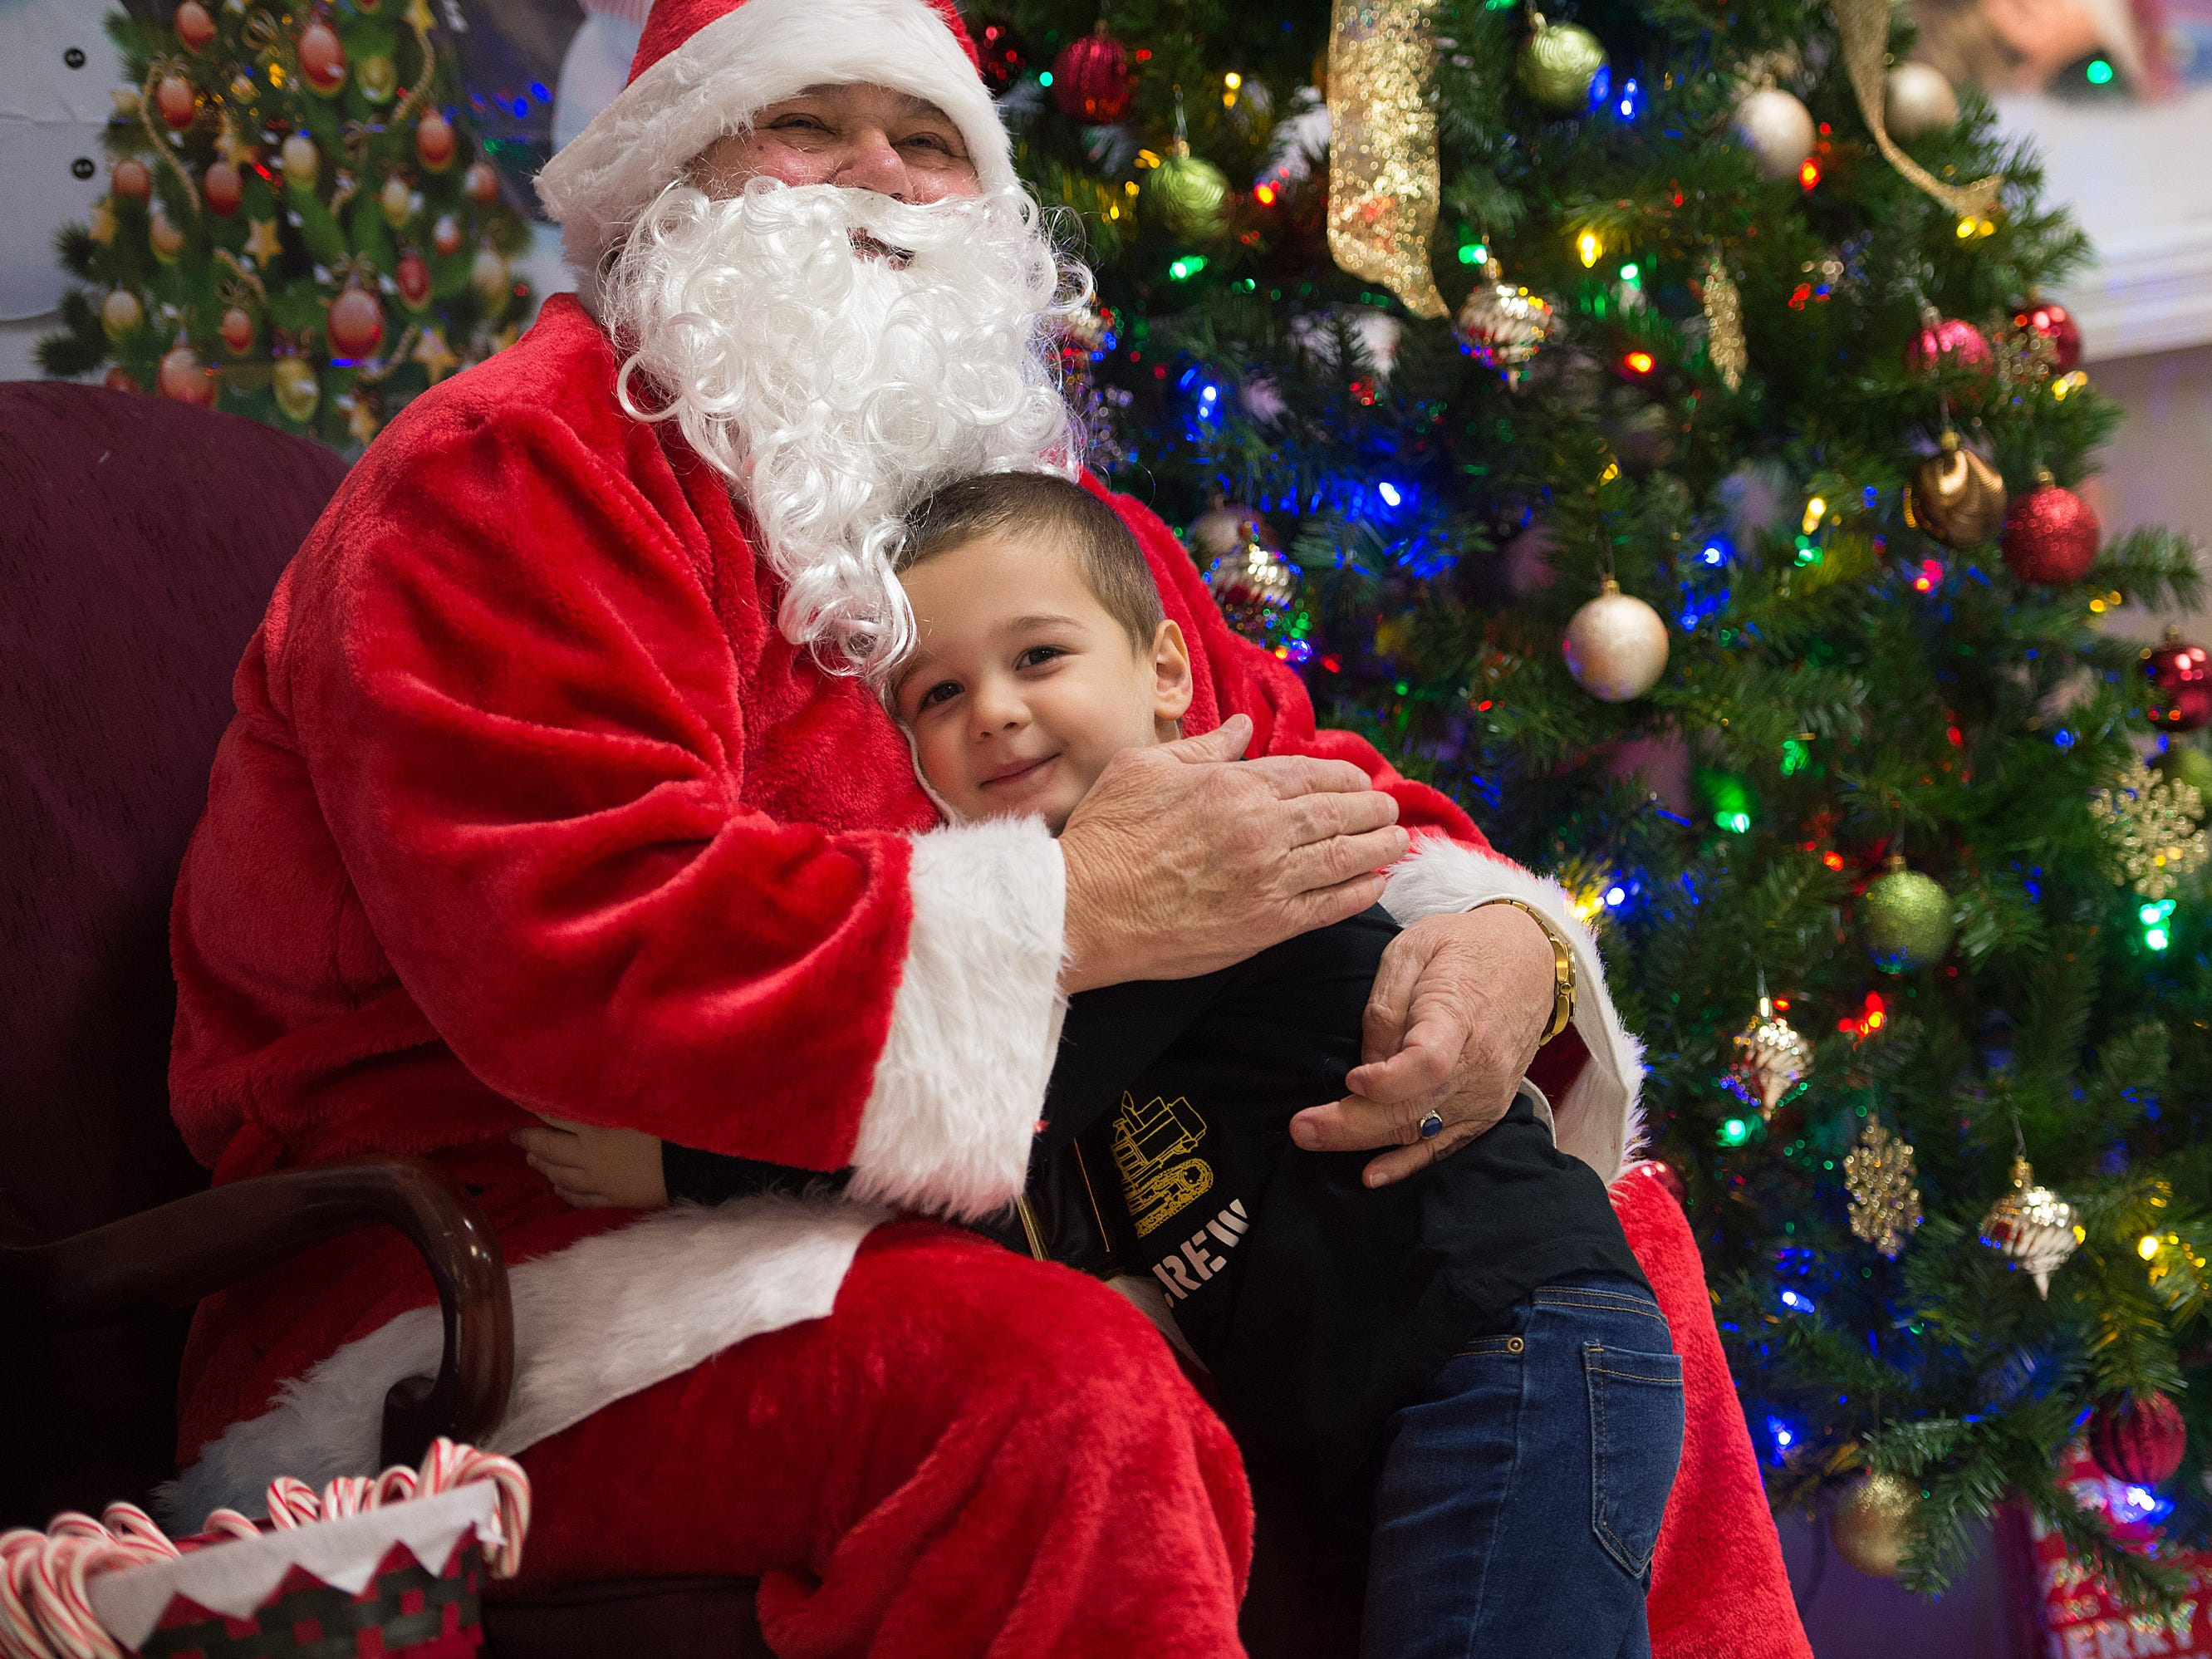 "Vincenzo Roscello, 3, of Port St. Lucie, hugs Santa Claus during the Firehouse Youth Centre's Breakfast with Santa fundraiser event at the Firehouse Youth Centre on Friday, November 30, 2018 in Port St. Lucie. ""I want a monster truck with batteries and a remote control,"" said Roscello adding, ""I like Santa."" The event was held as a fundraiser for families in need over the holidays."